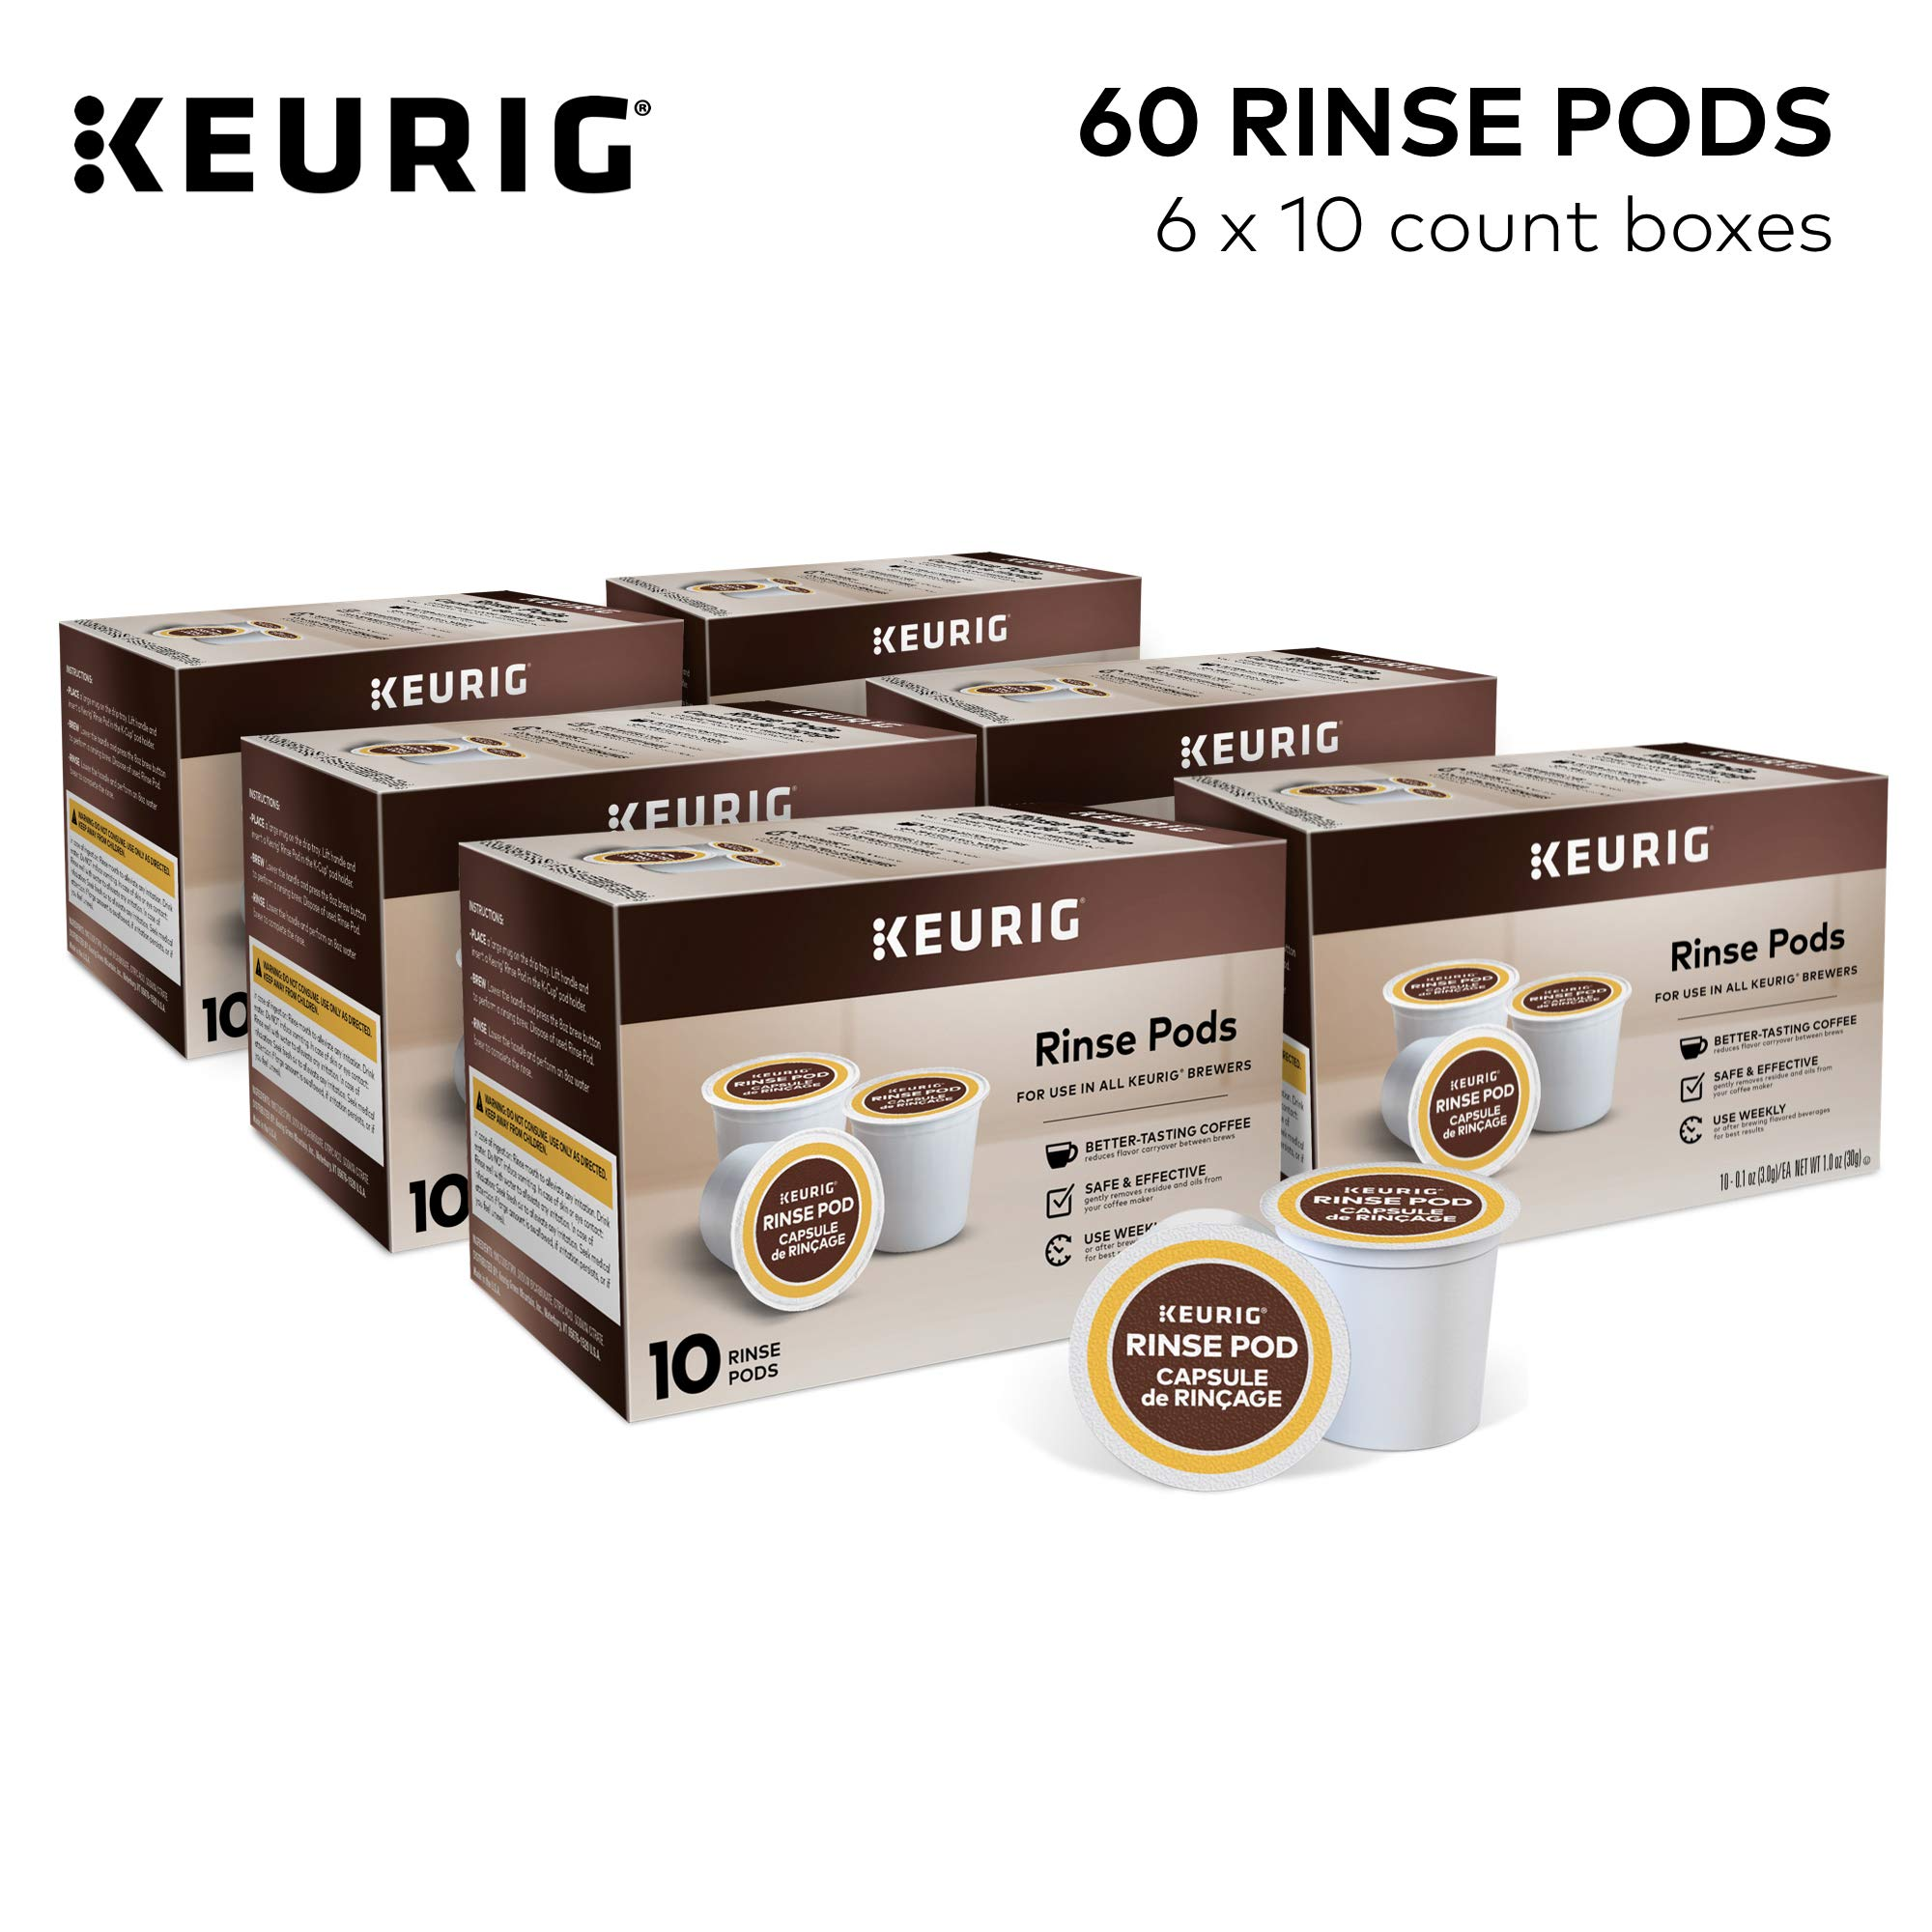 Keurig Rinse Pods Compatible with All Keurig K-Cup Pod Coffee Makers Reduces Flavor Carry-Over, 60 Count